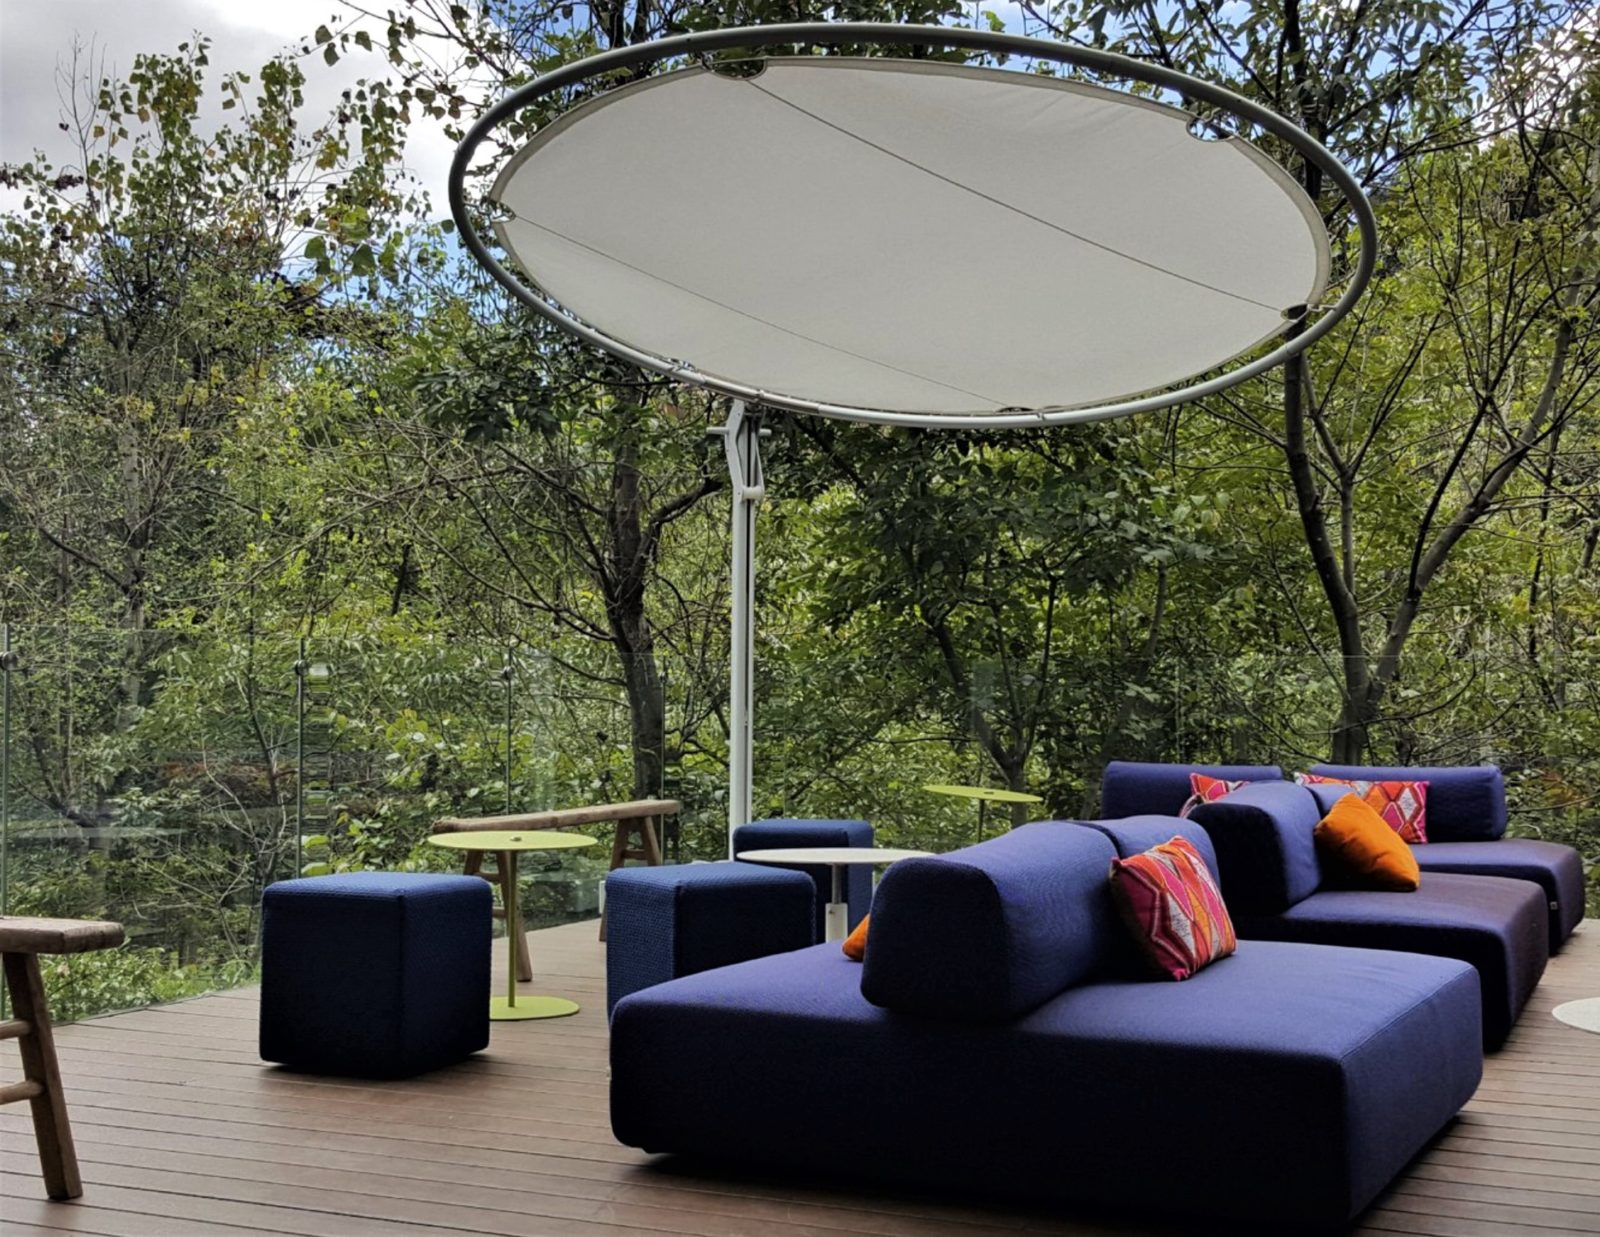 Round Celeste Cantilever 360 Rotation Adjustable Luxury